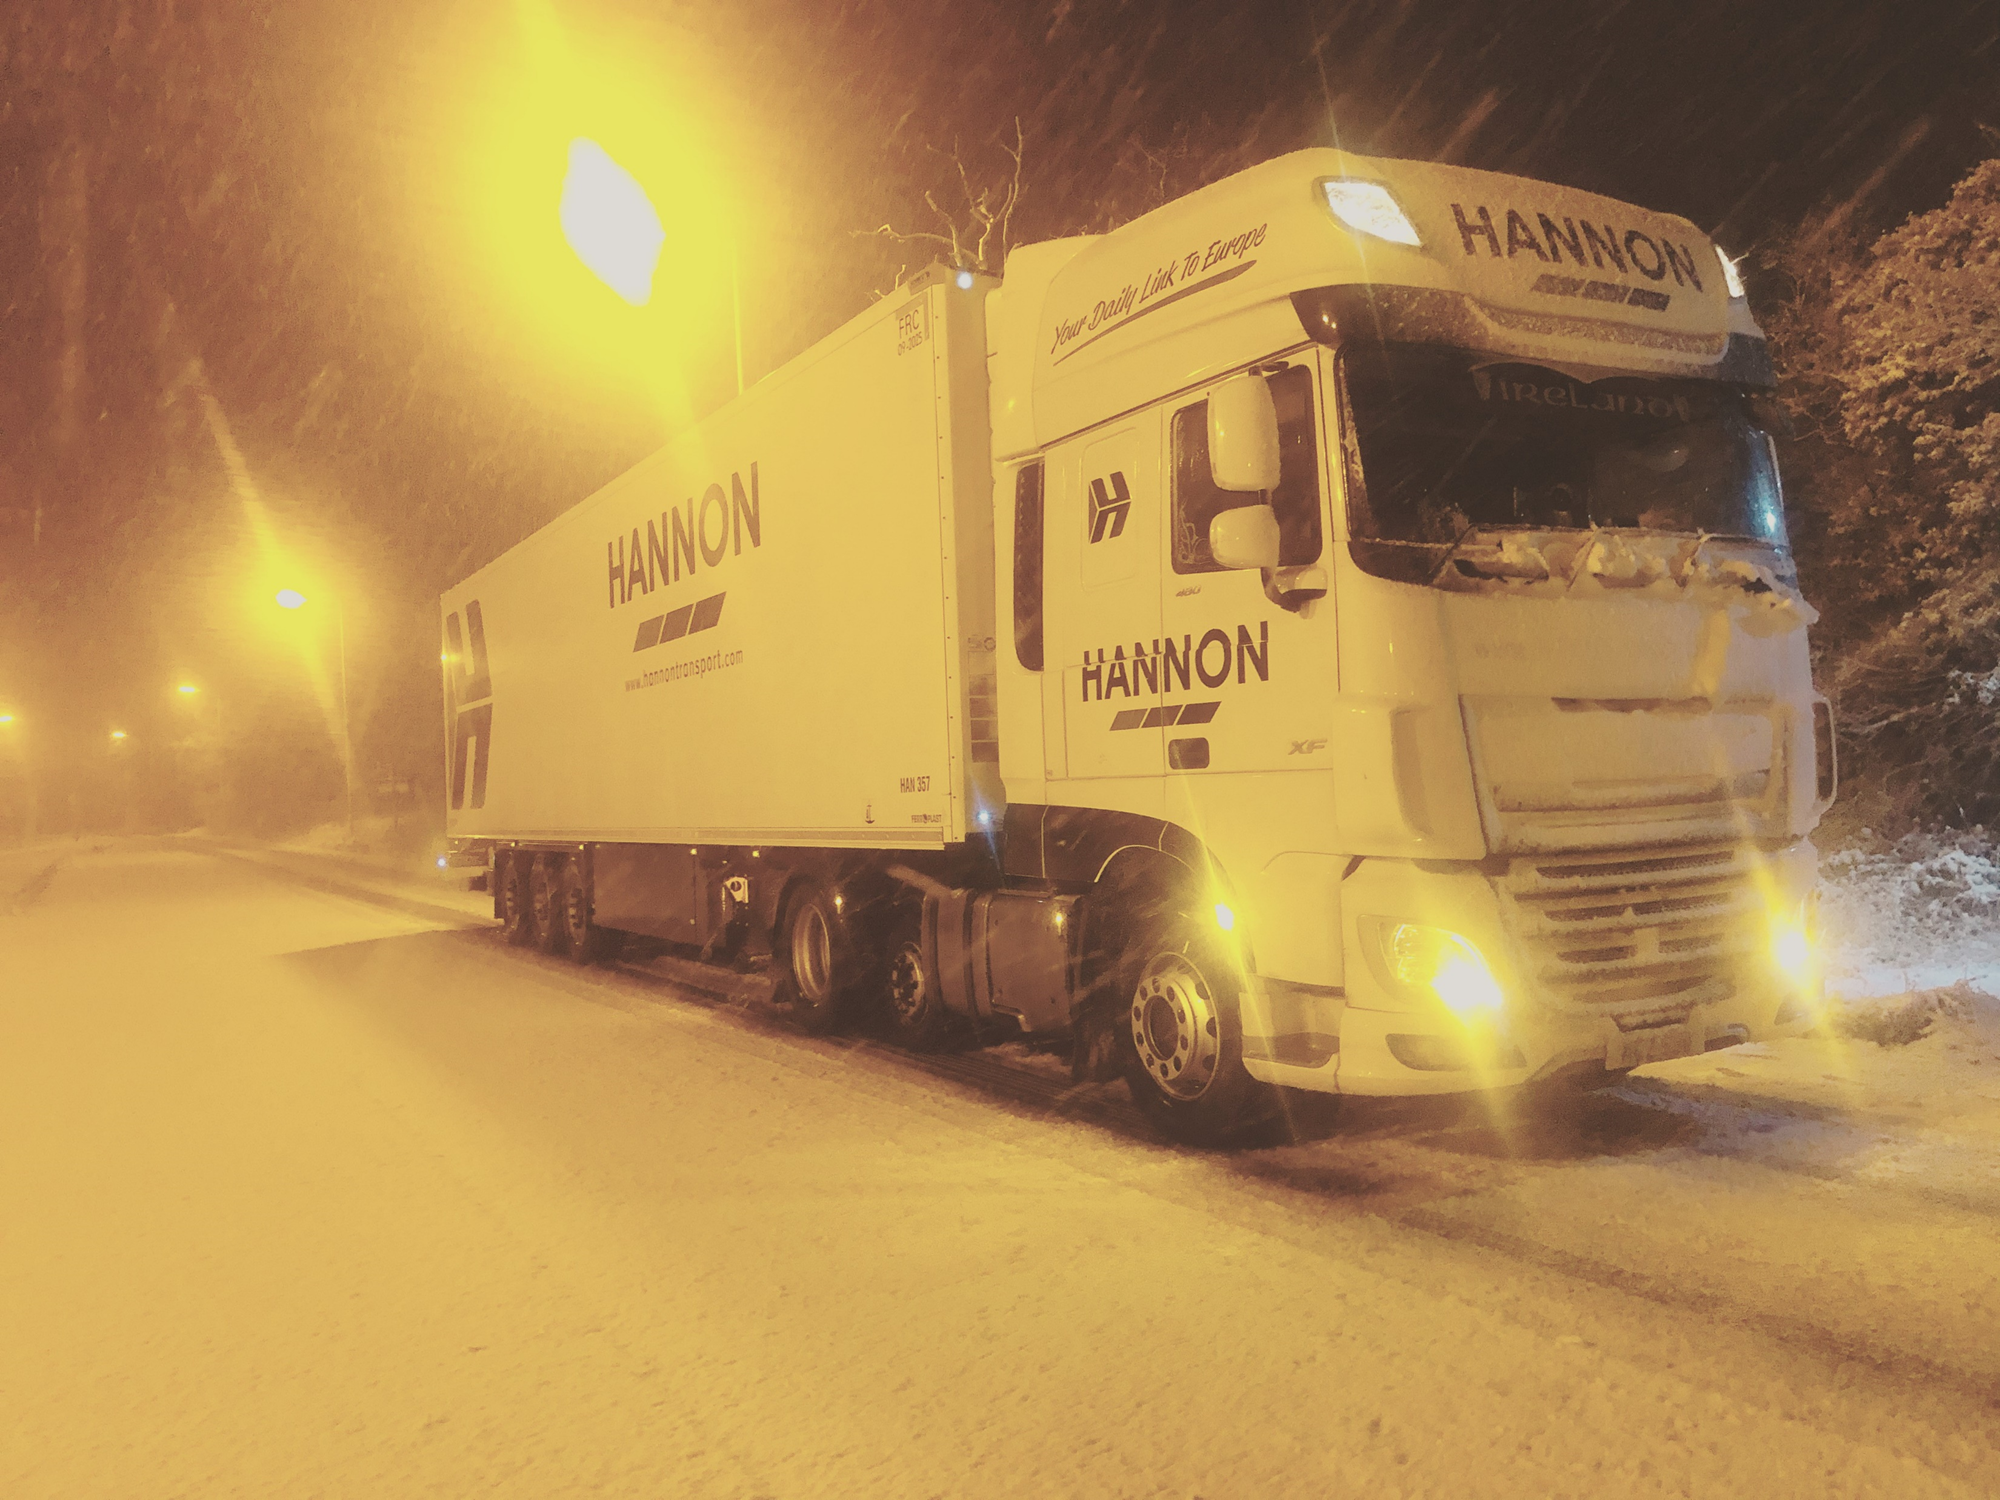 HANNON Truck in Snow